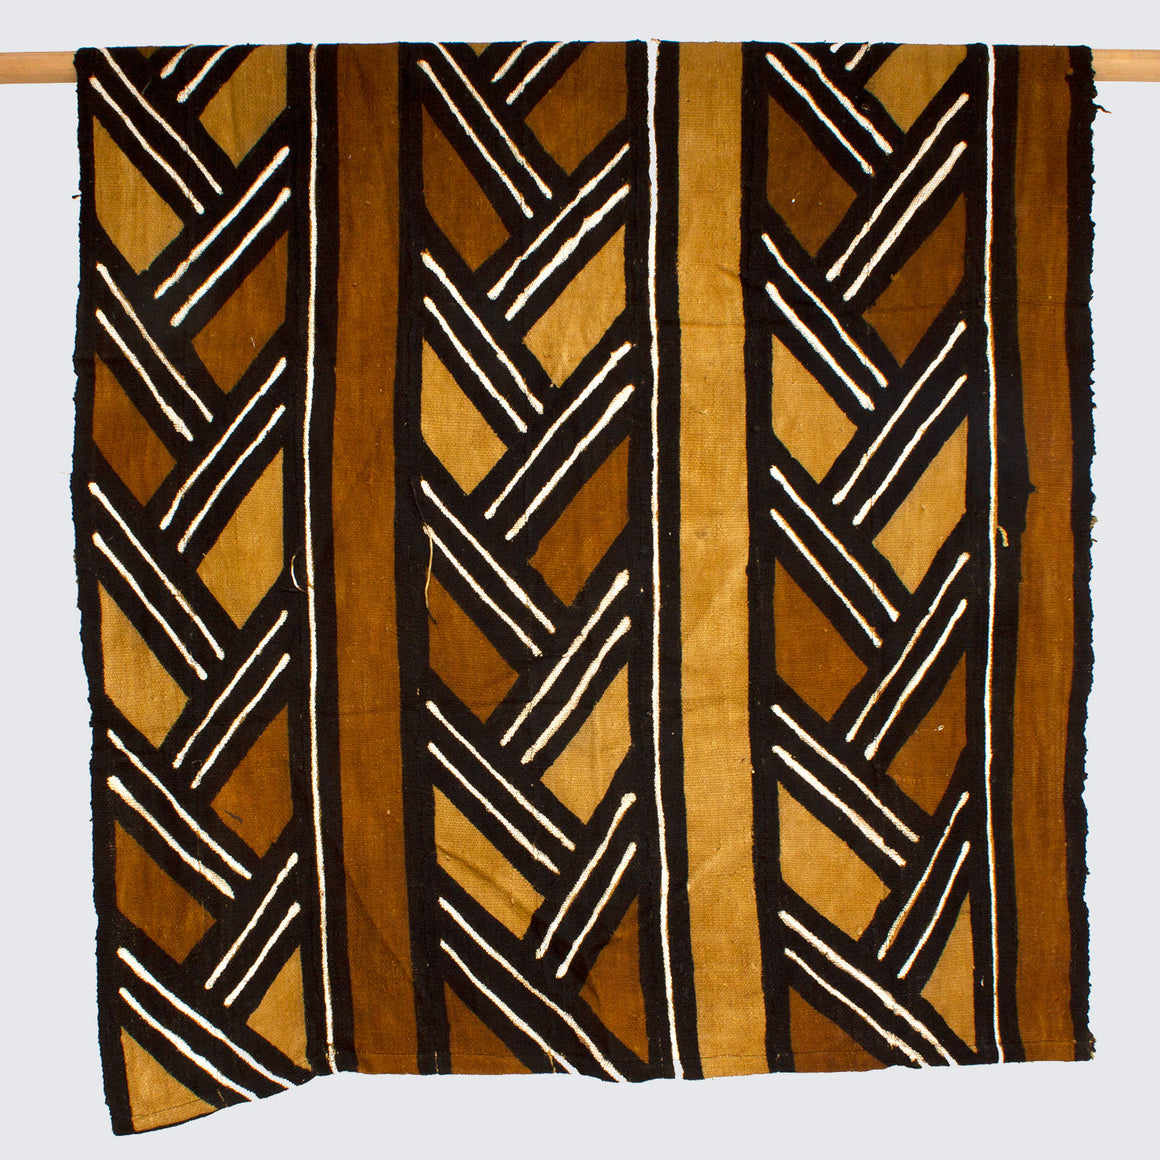 West African Bògòlanfini Mud Cloth 'Mali Plait'